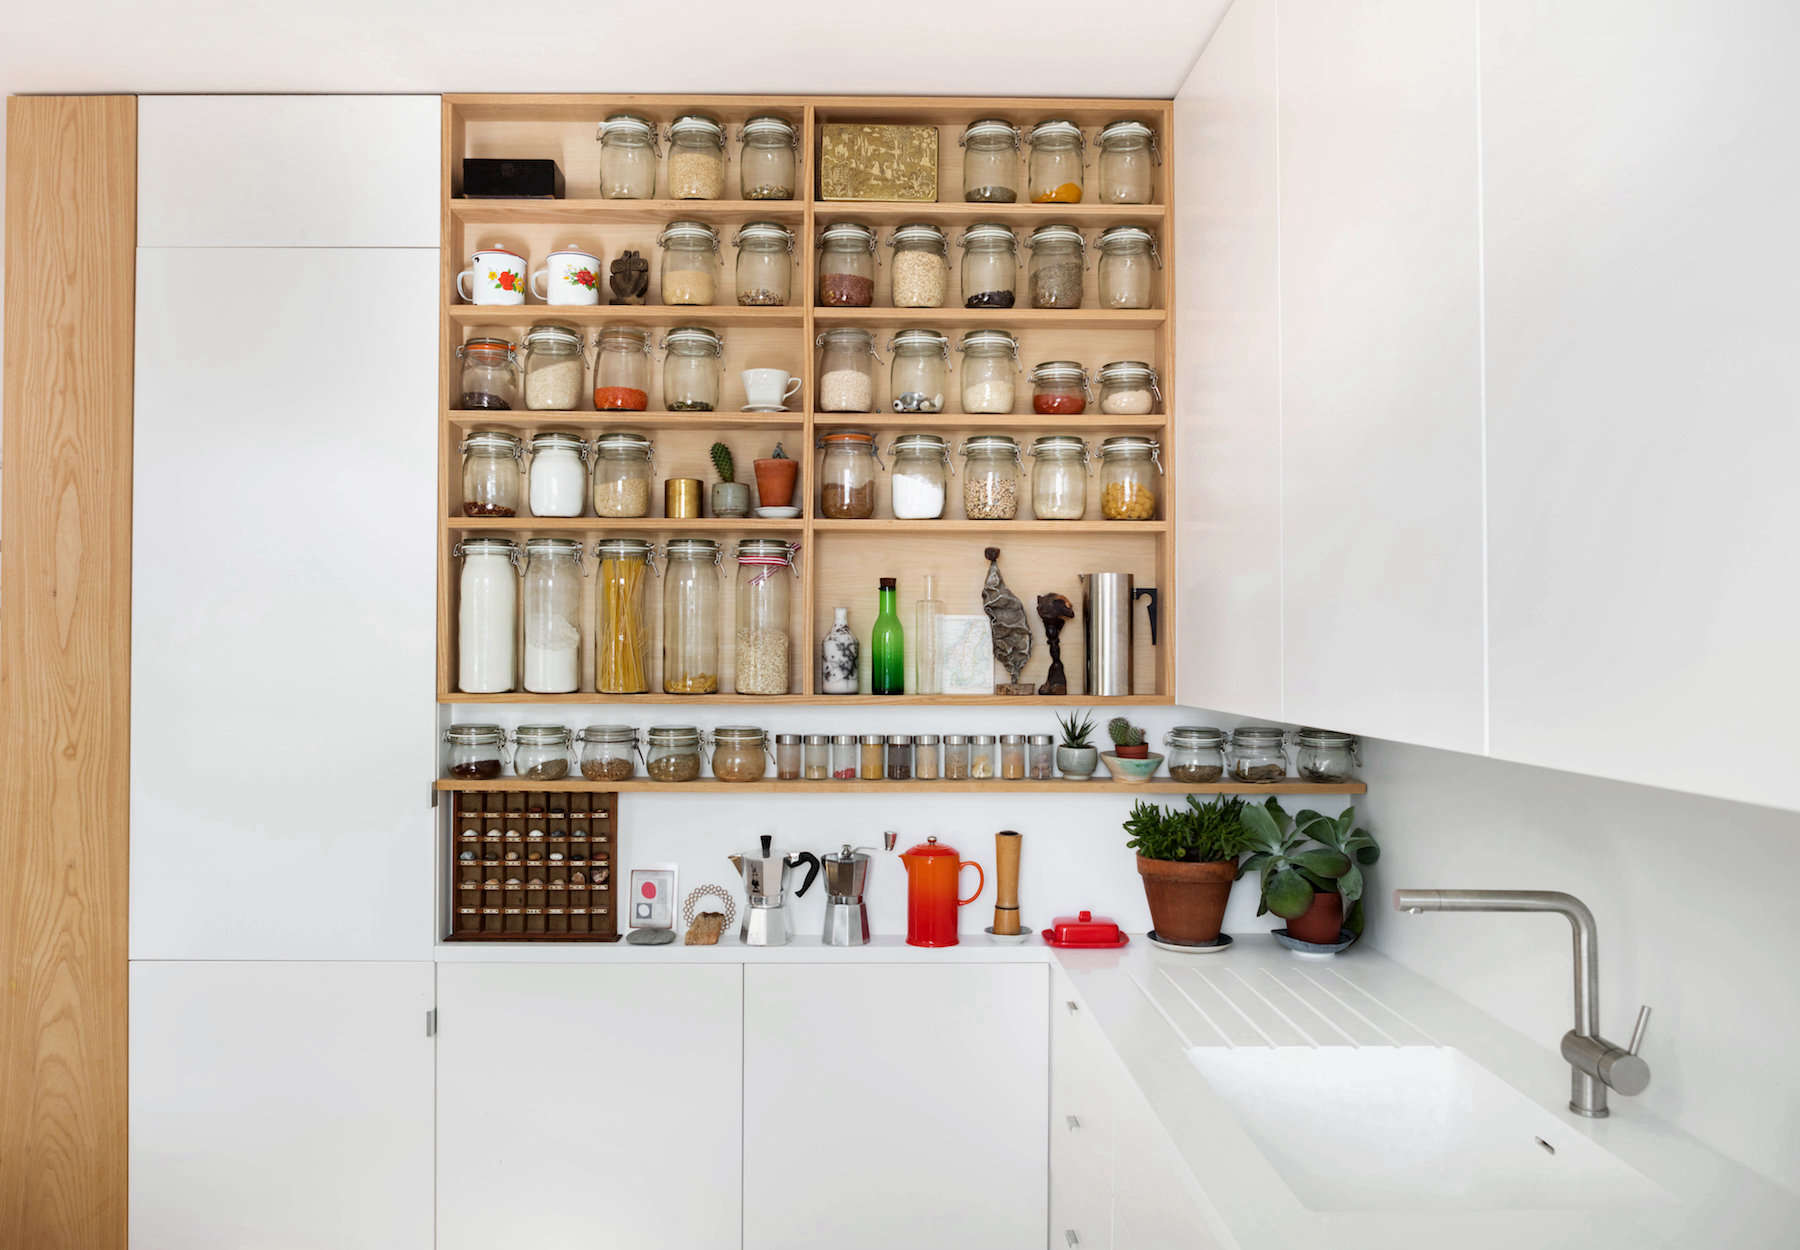 Small-space-apartment-london-emil-eve-6